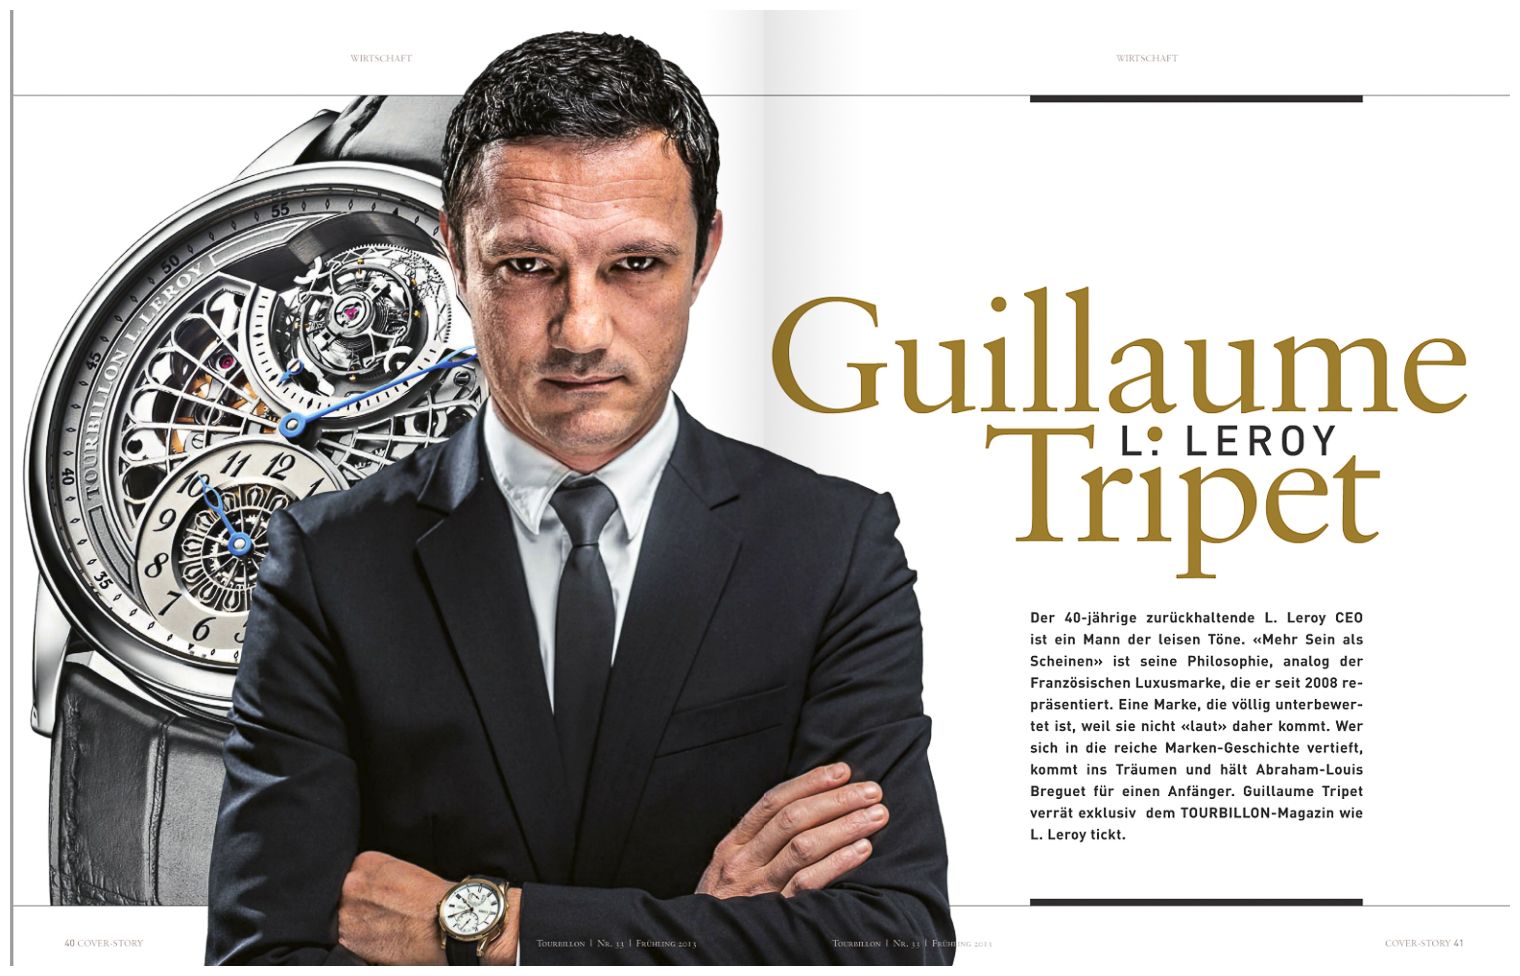 Tourbillon magazine